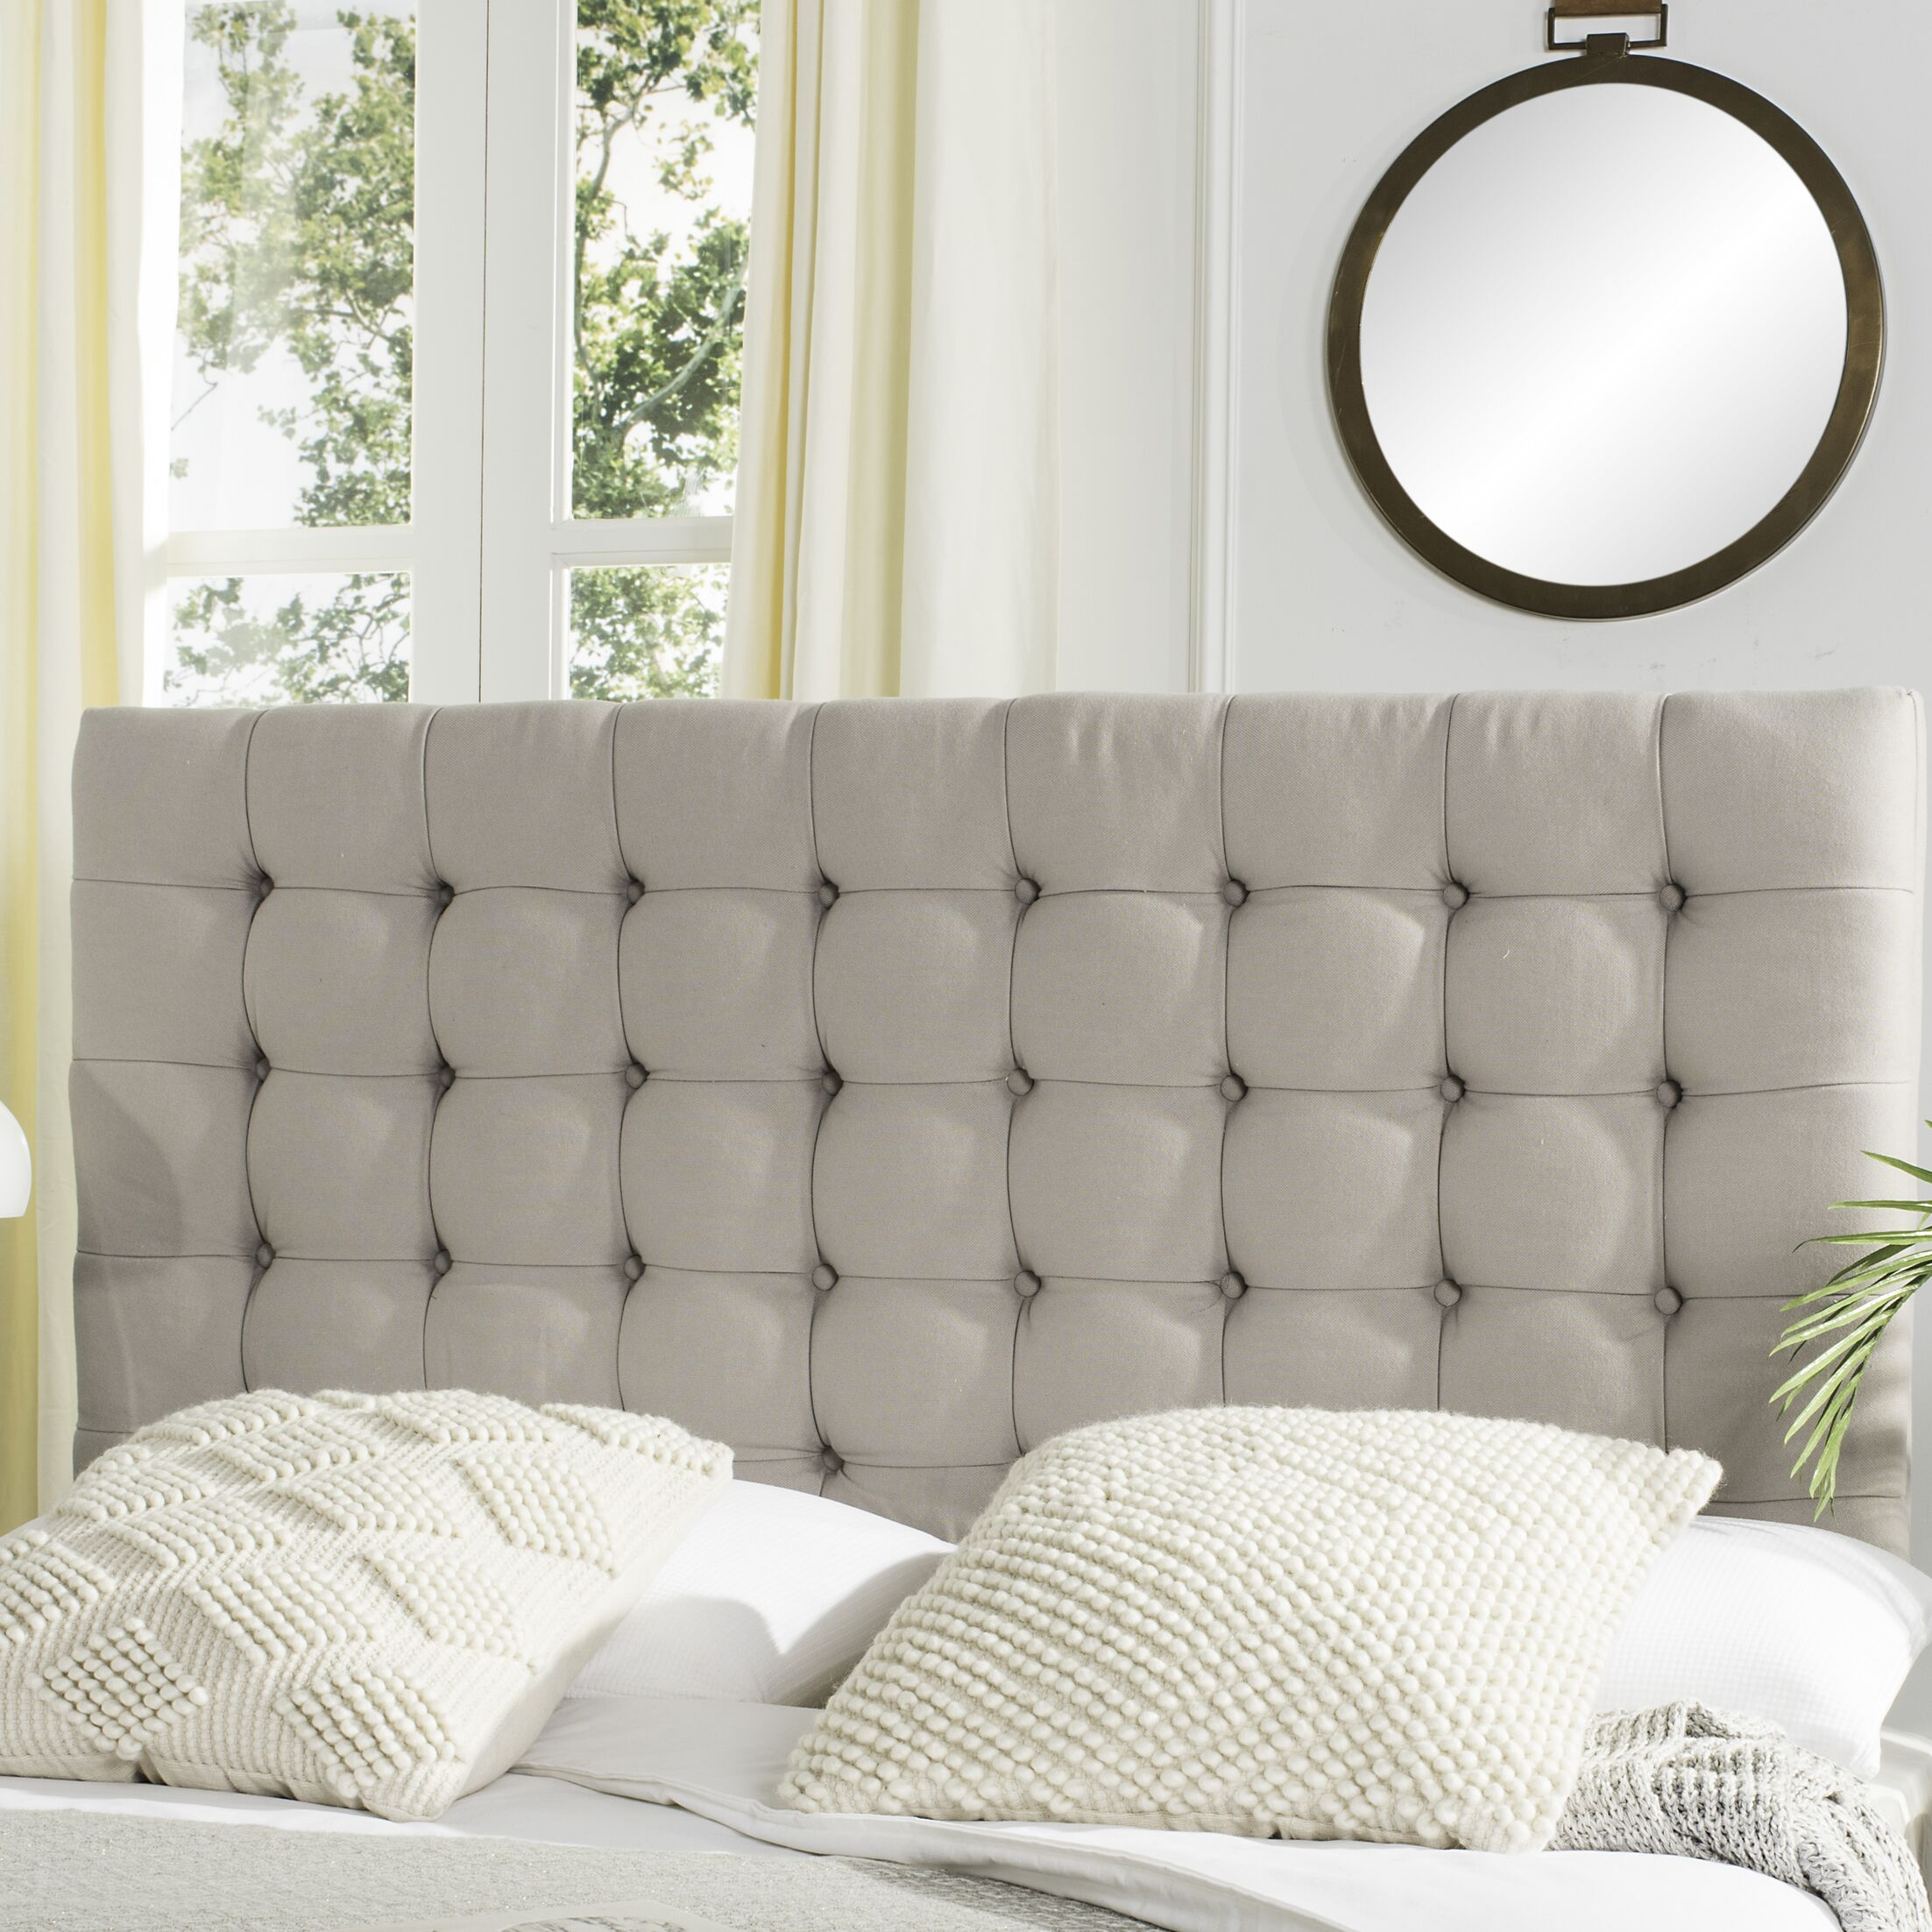 Fitch Upholstered Panel Headboard Upholstery: Linen Taupe, Size: King